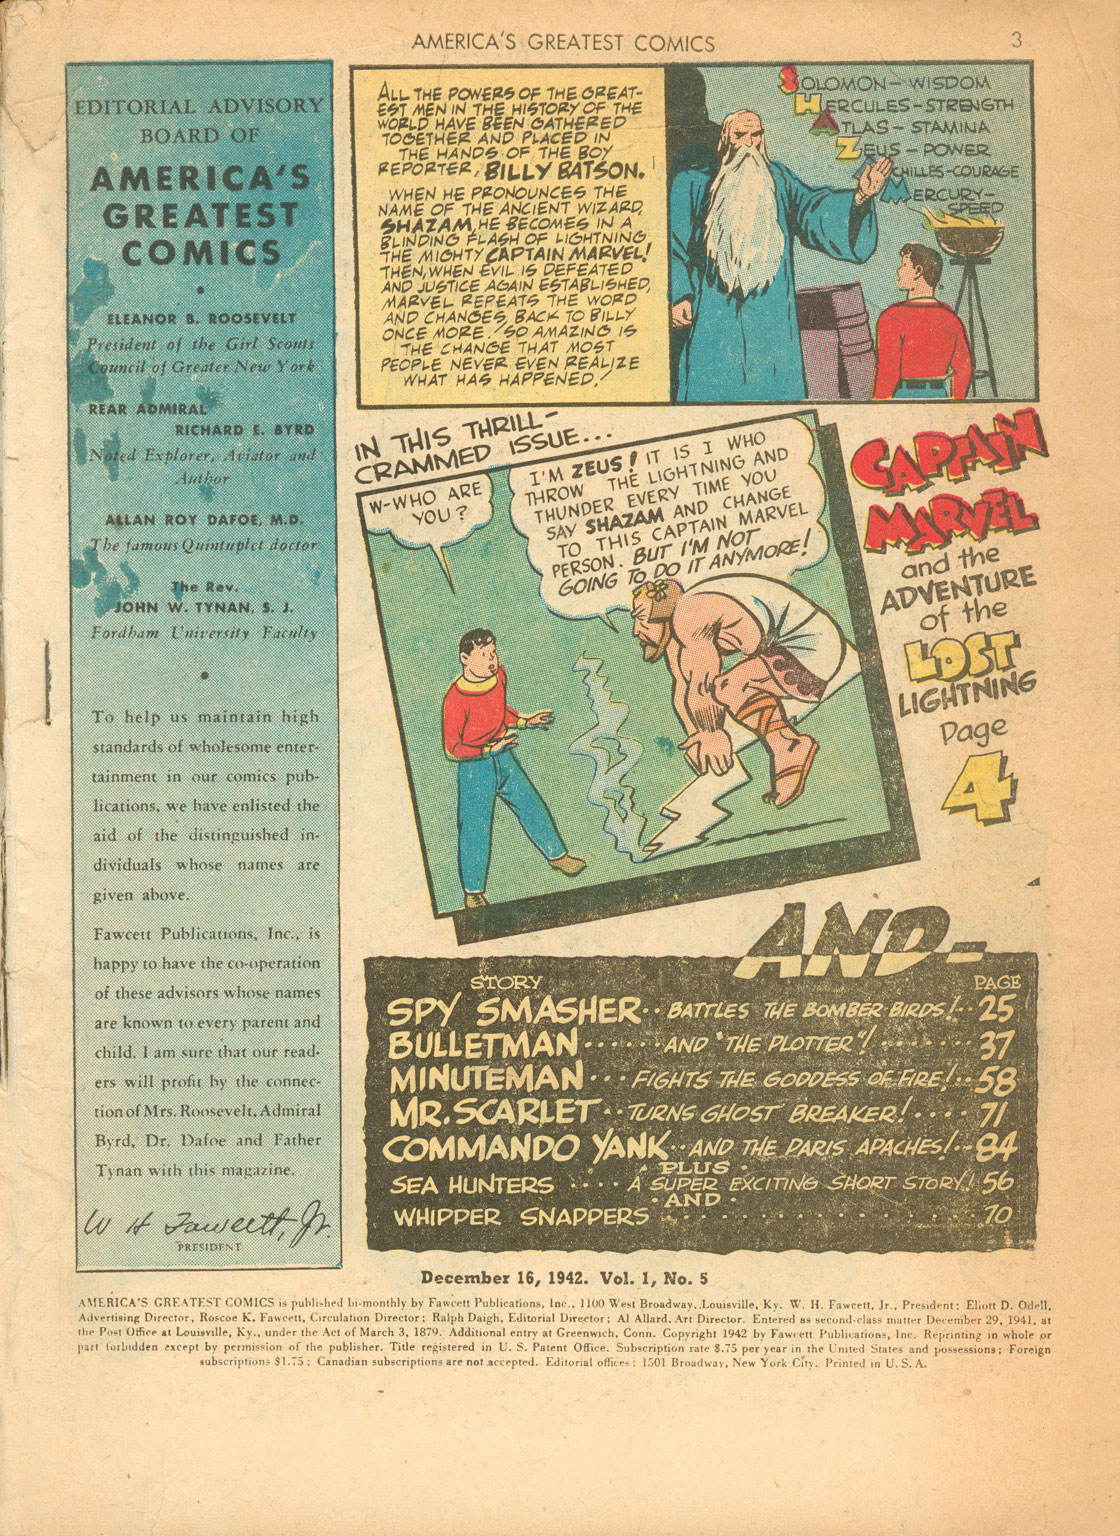 Read online America's Greatest Comics comic -  Issue #5 - 3